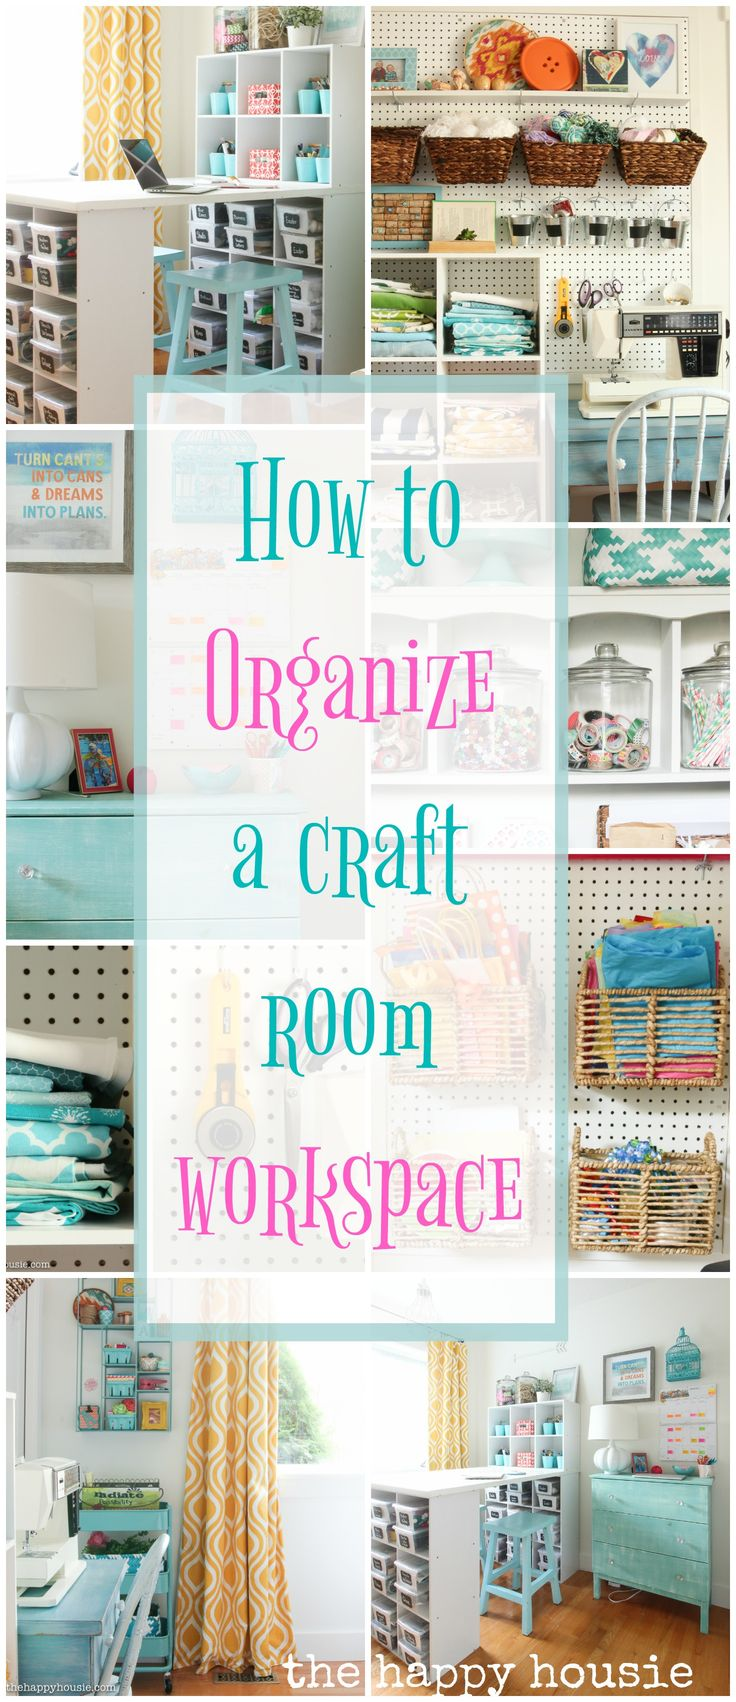 This is full of amazing ideas for how to organize a craft room or creative work space using thrifty and cute storage ideas and a step by step process.